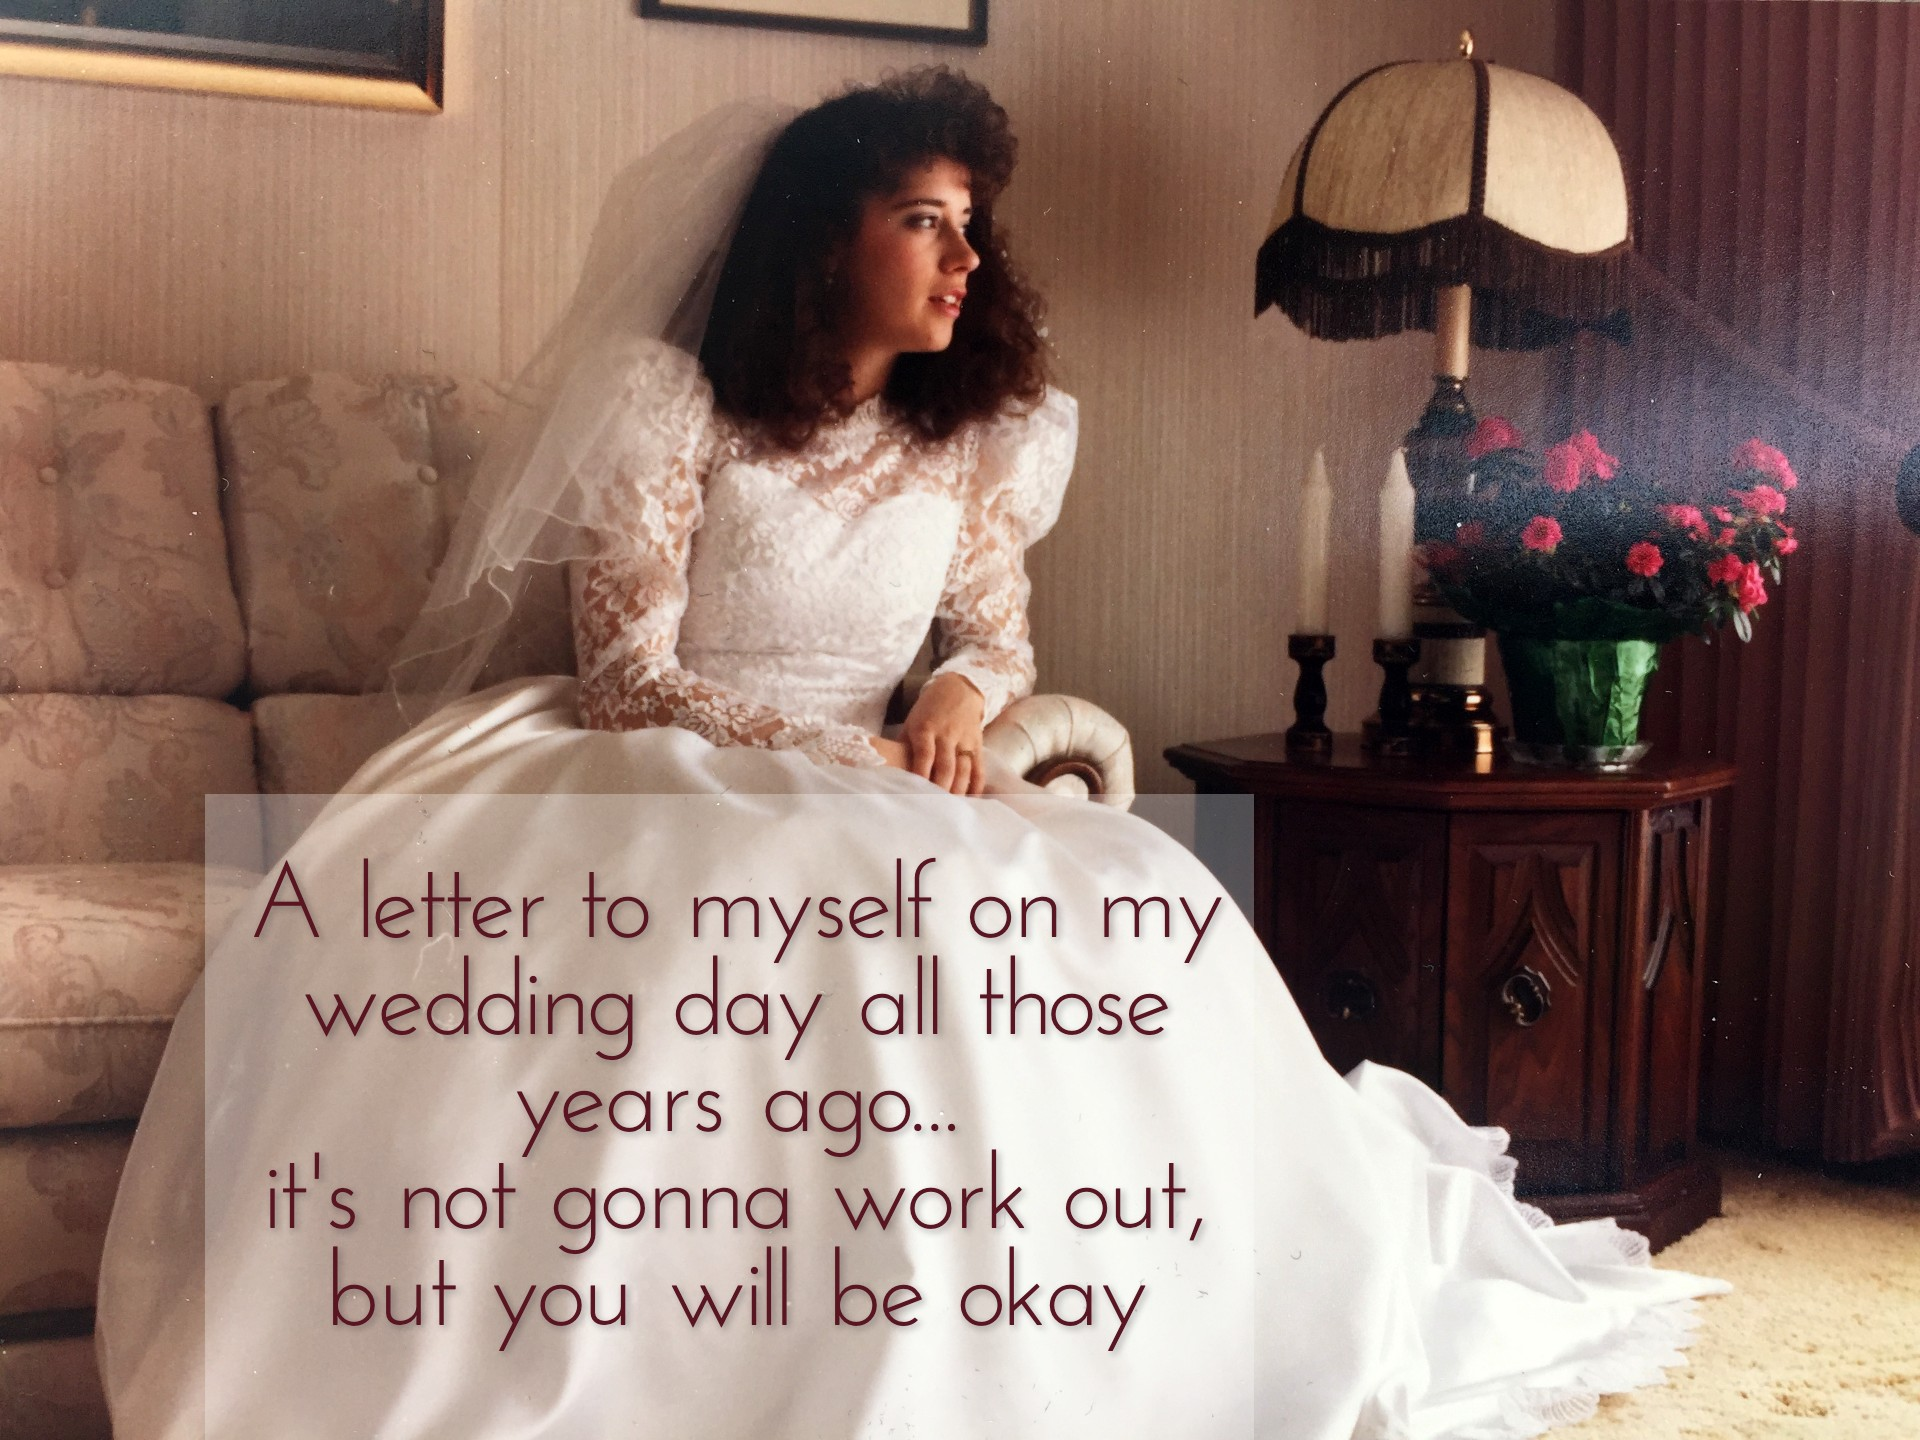 On the anniversary: A letter to myself on my wedding day all those years ago. It's not gonna work out, but you will be okay.